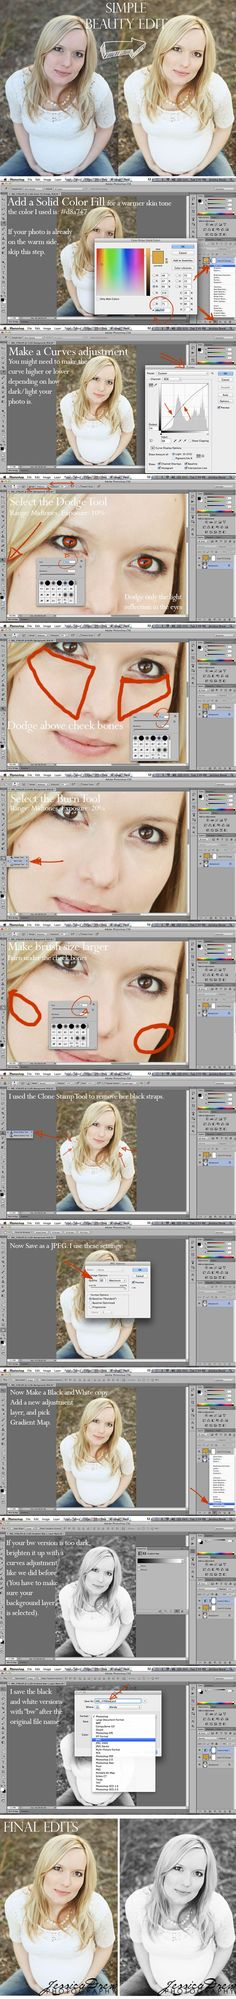 Simple Beauty Edit in Photoshop CS6 » Jessica Drew Photography